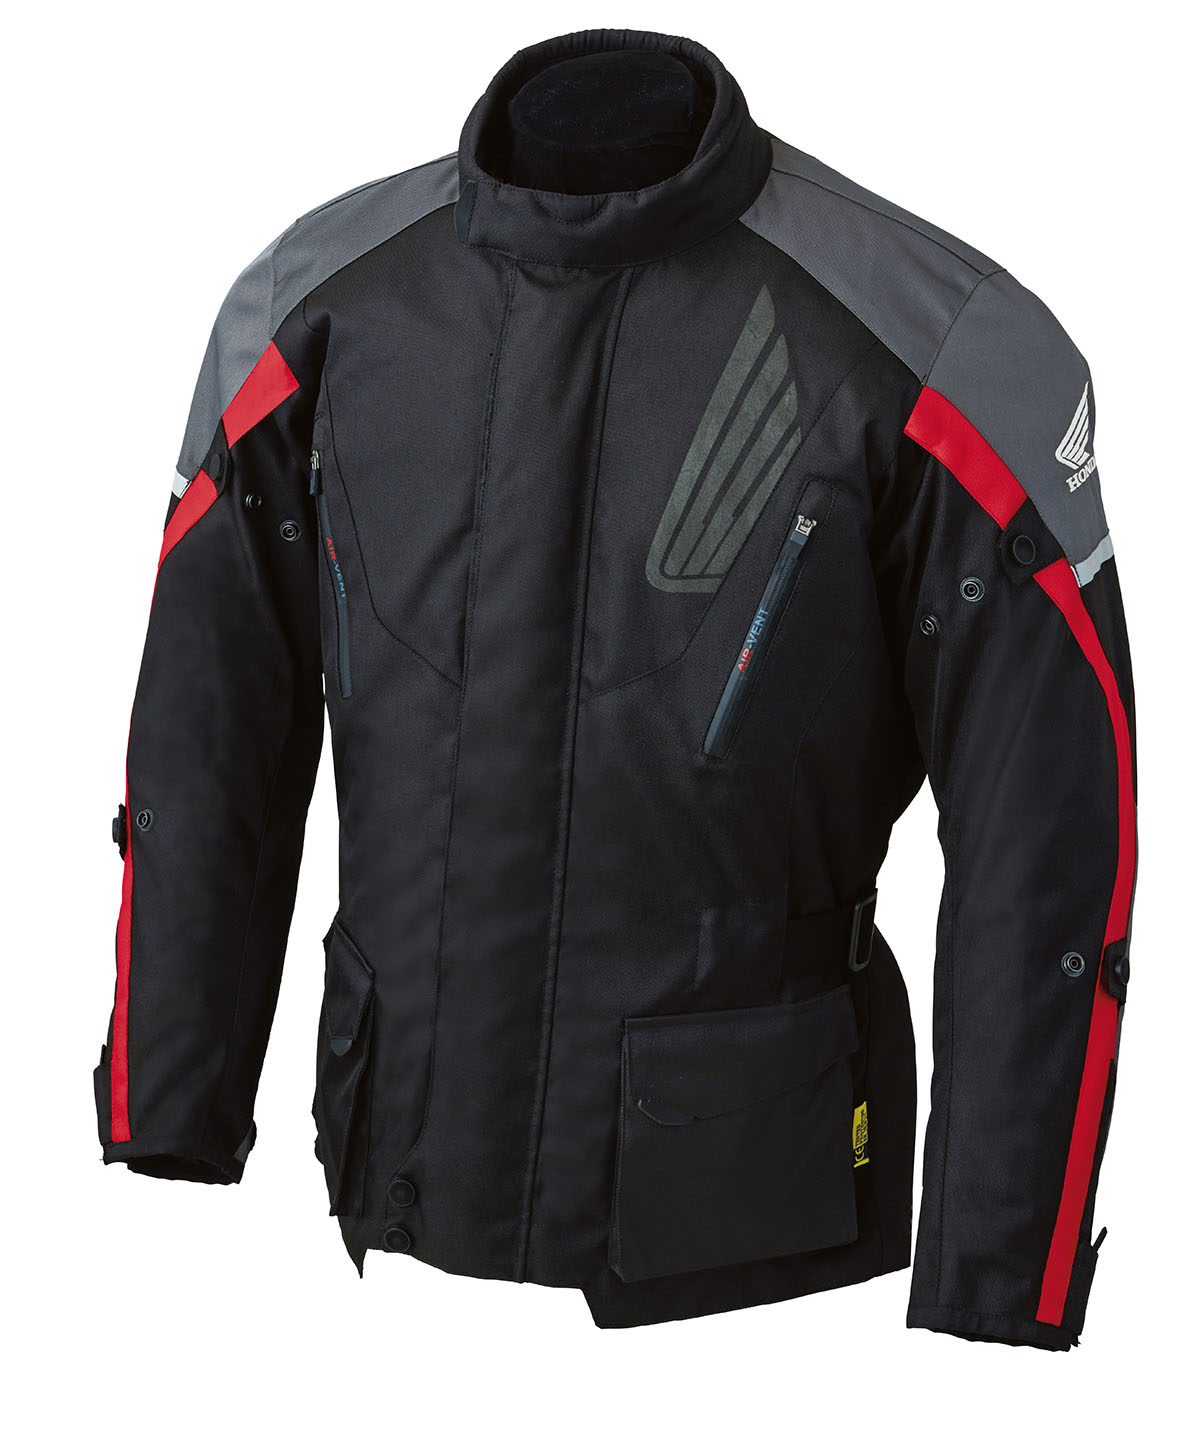 HONDA RIDING GEAR Protect Winter Jacket